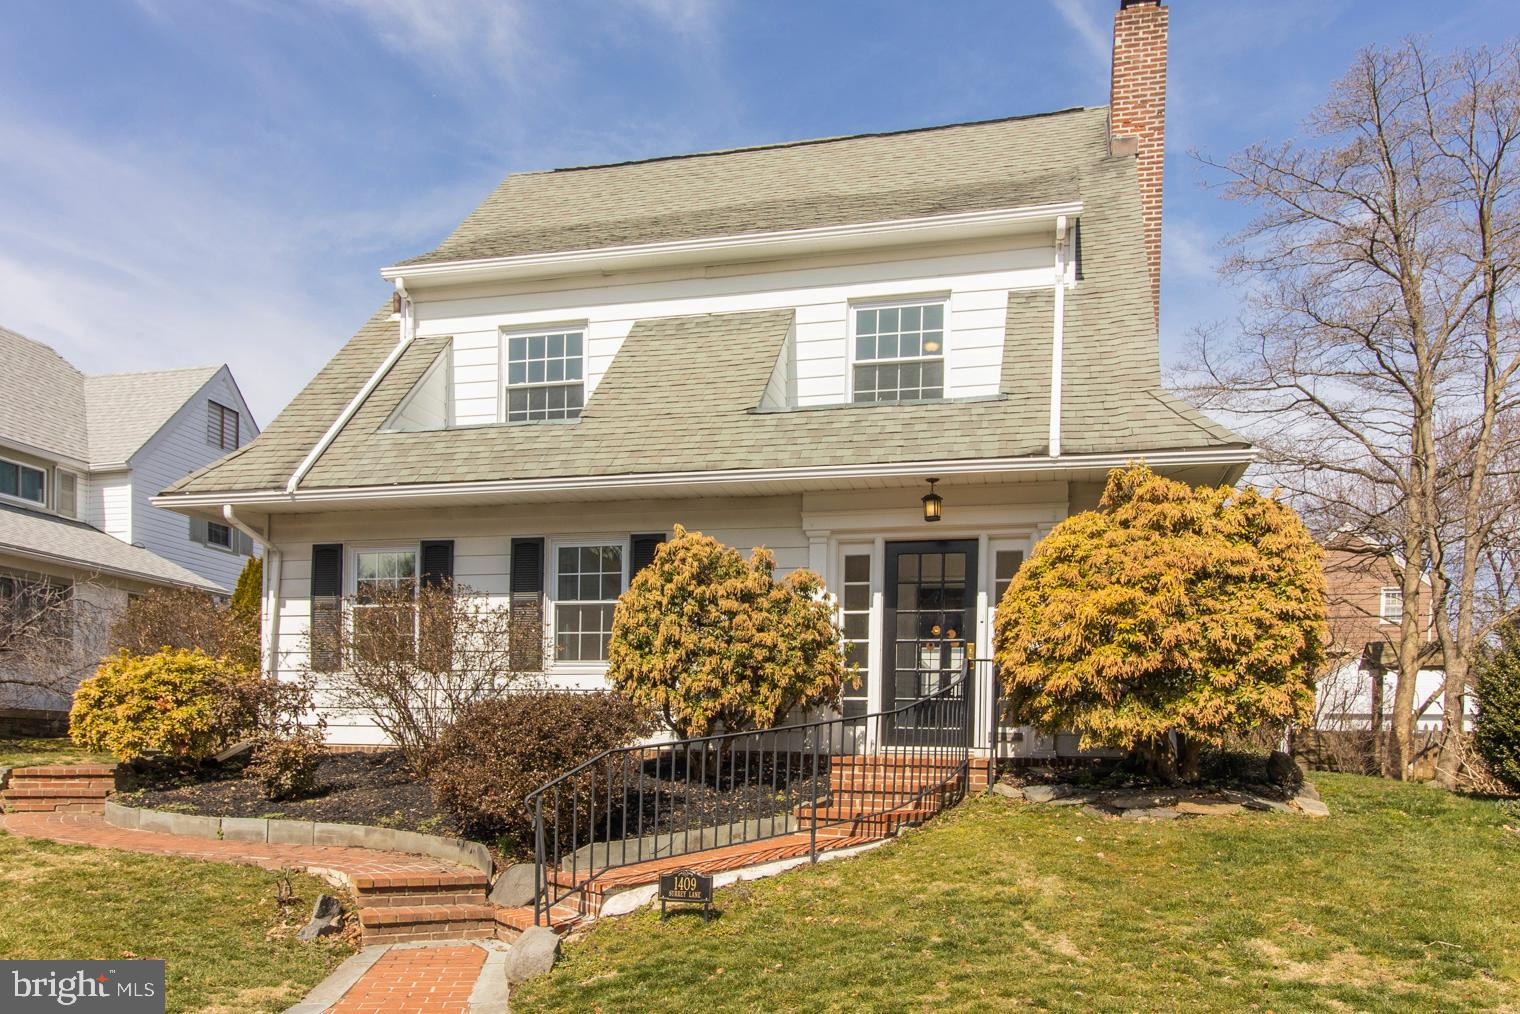 Move right into this stunning Colonial nestled on a quiet street in this family friendly neighborhood in Wynnewood! The curb appeal of this home makes it stand out as one of the cutest homes on the street. A winding brick walkway invites you into a bright and sunny foyer surrounded by windows that will put a smile on your face every time you walk through the front door. Gorgeous tile flooring begins in the foyer and continues into the first floor office that can also be used as a playroom. The open floor plan, abundance of daylight in every room, and the exceptional design marrying the original historic elements with contemporary upgrades are just a couple of the reasons we love this home. It looks like it was taken straight from the pages of an interior design magazine. As you walk into the living room, you feel right at home as its open design gives clear sight lines to the kitchen and dining space while also feeling cozy and warm. Original solid oak hardwood floors, recessed lighting, and paneled windows flow from room to room beginning in the living room where a wood-burning fireplace creates the picture perfect place to cuddle up with a good movie on a chilly night as you watch the snow fall. Through the dining room, a gourmet kitchen will catch your eye and immediately draw you in. All white cabinets, gorgeous countertops, white tile backsplash, stainless steel appliances, and a large island with built-in microwave captivates you and makes a great entertaining space. A half bathroom rounds out the first floor. On the second floor, a large and bright master en suite features a spa-like bathroom with luxury stone/marble flooring and a tile shower with a frameless glass enclosure. You will also find 2 more sunny bedrooms and another high end full bathroom with stone/marble finishes. Another room on this floor can be counted as a bedroom but is currently being used as a closet/dressing room and has a walk up to the 3rd floor suite where you will find another huge 